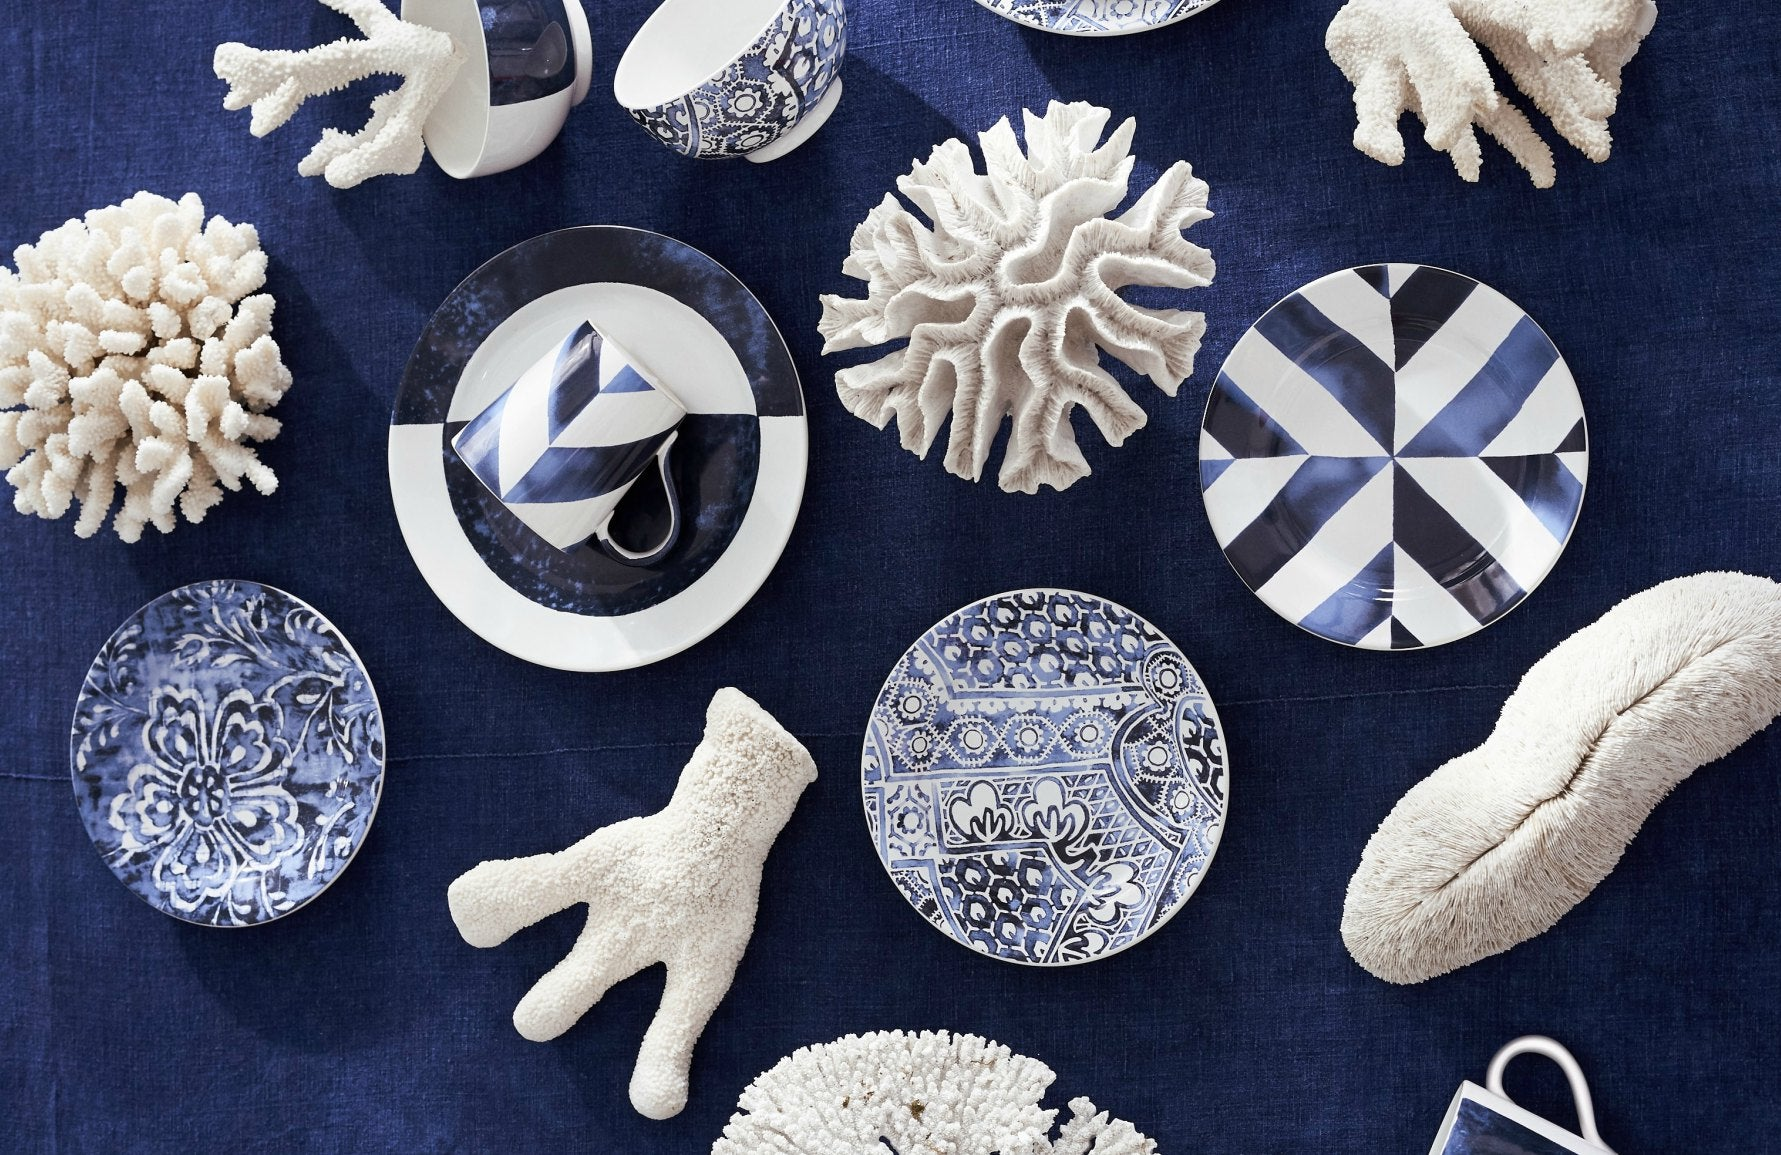 Behind The Brand, Ralph Lauren | Blue and white tableware | Shop at LuxDeco.com